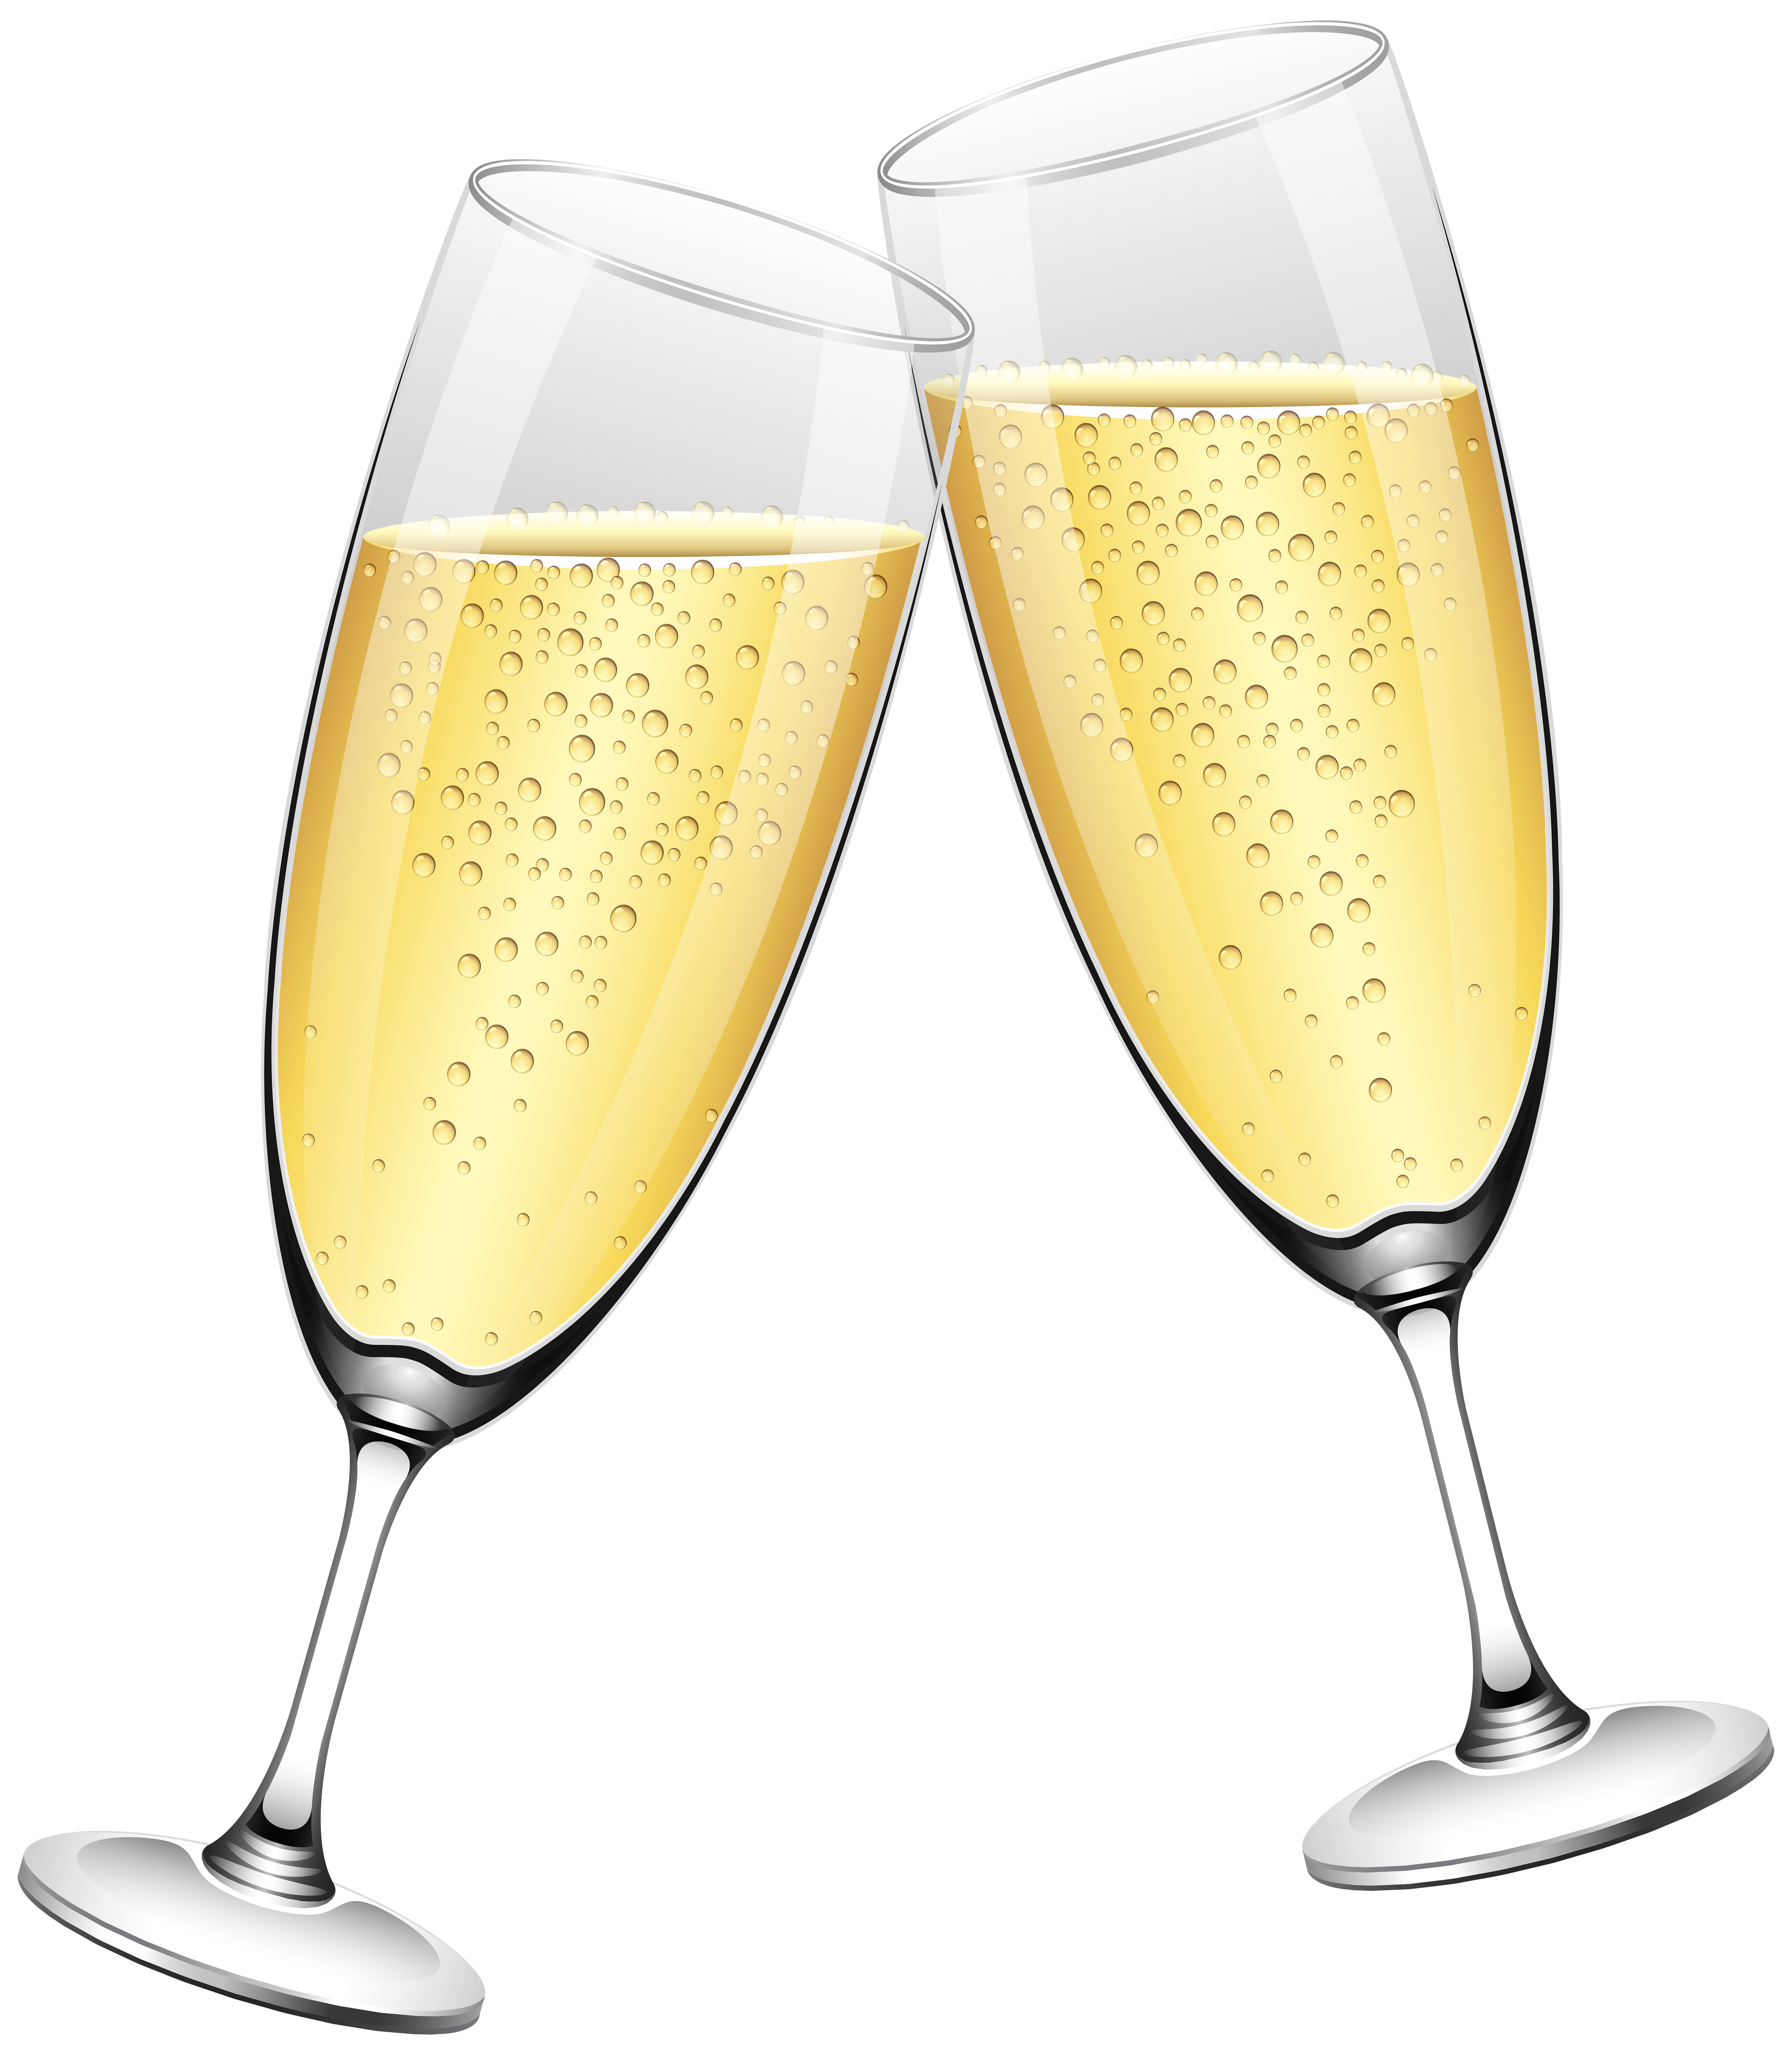 Champaign clipart wine glass. Wedding champagne glasses png